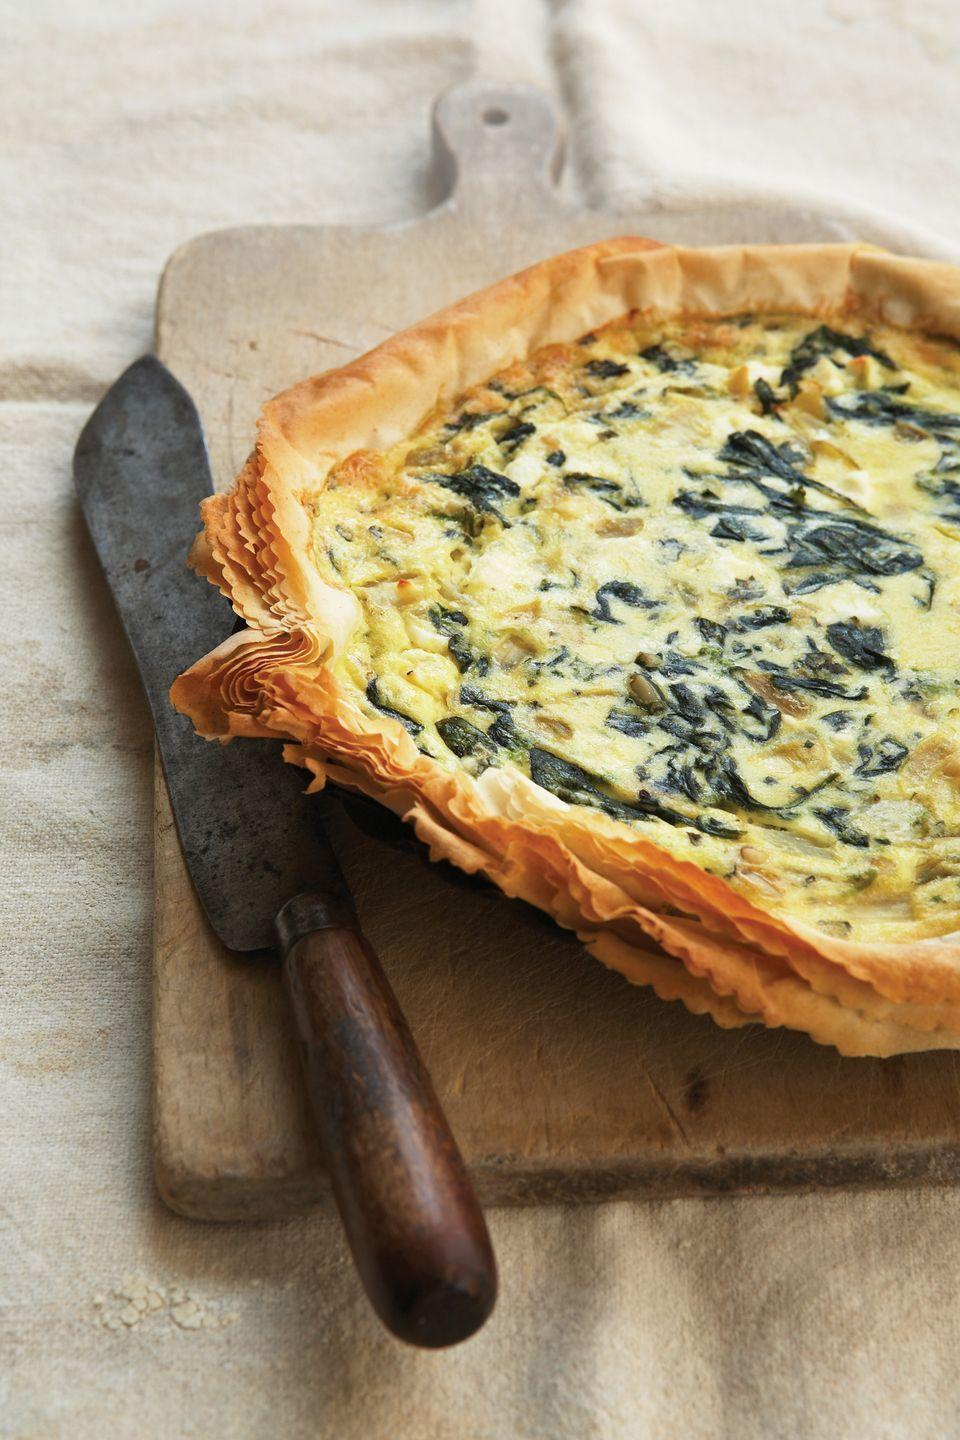 """<p>Chunky chopped pesto and creamy ricotta combine in a flaky phyllo dough crust.</p><p><strong><a href=""""https://www.countryliving.com/food-drinks/recipes/a2414/pesto-ricotta-pie-recipe/"""" rel=""""nofollow noopener"""" target=""""_blank"""" data-ylk=""""slk:Get the recipe"""" class=""""link rapid-noclick-resp"""">Get the recipe</a>.</strong><span class=""""gallery-slide--copyright""""><br></span></p>"""